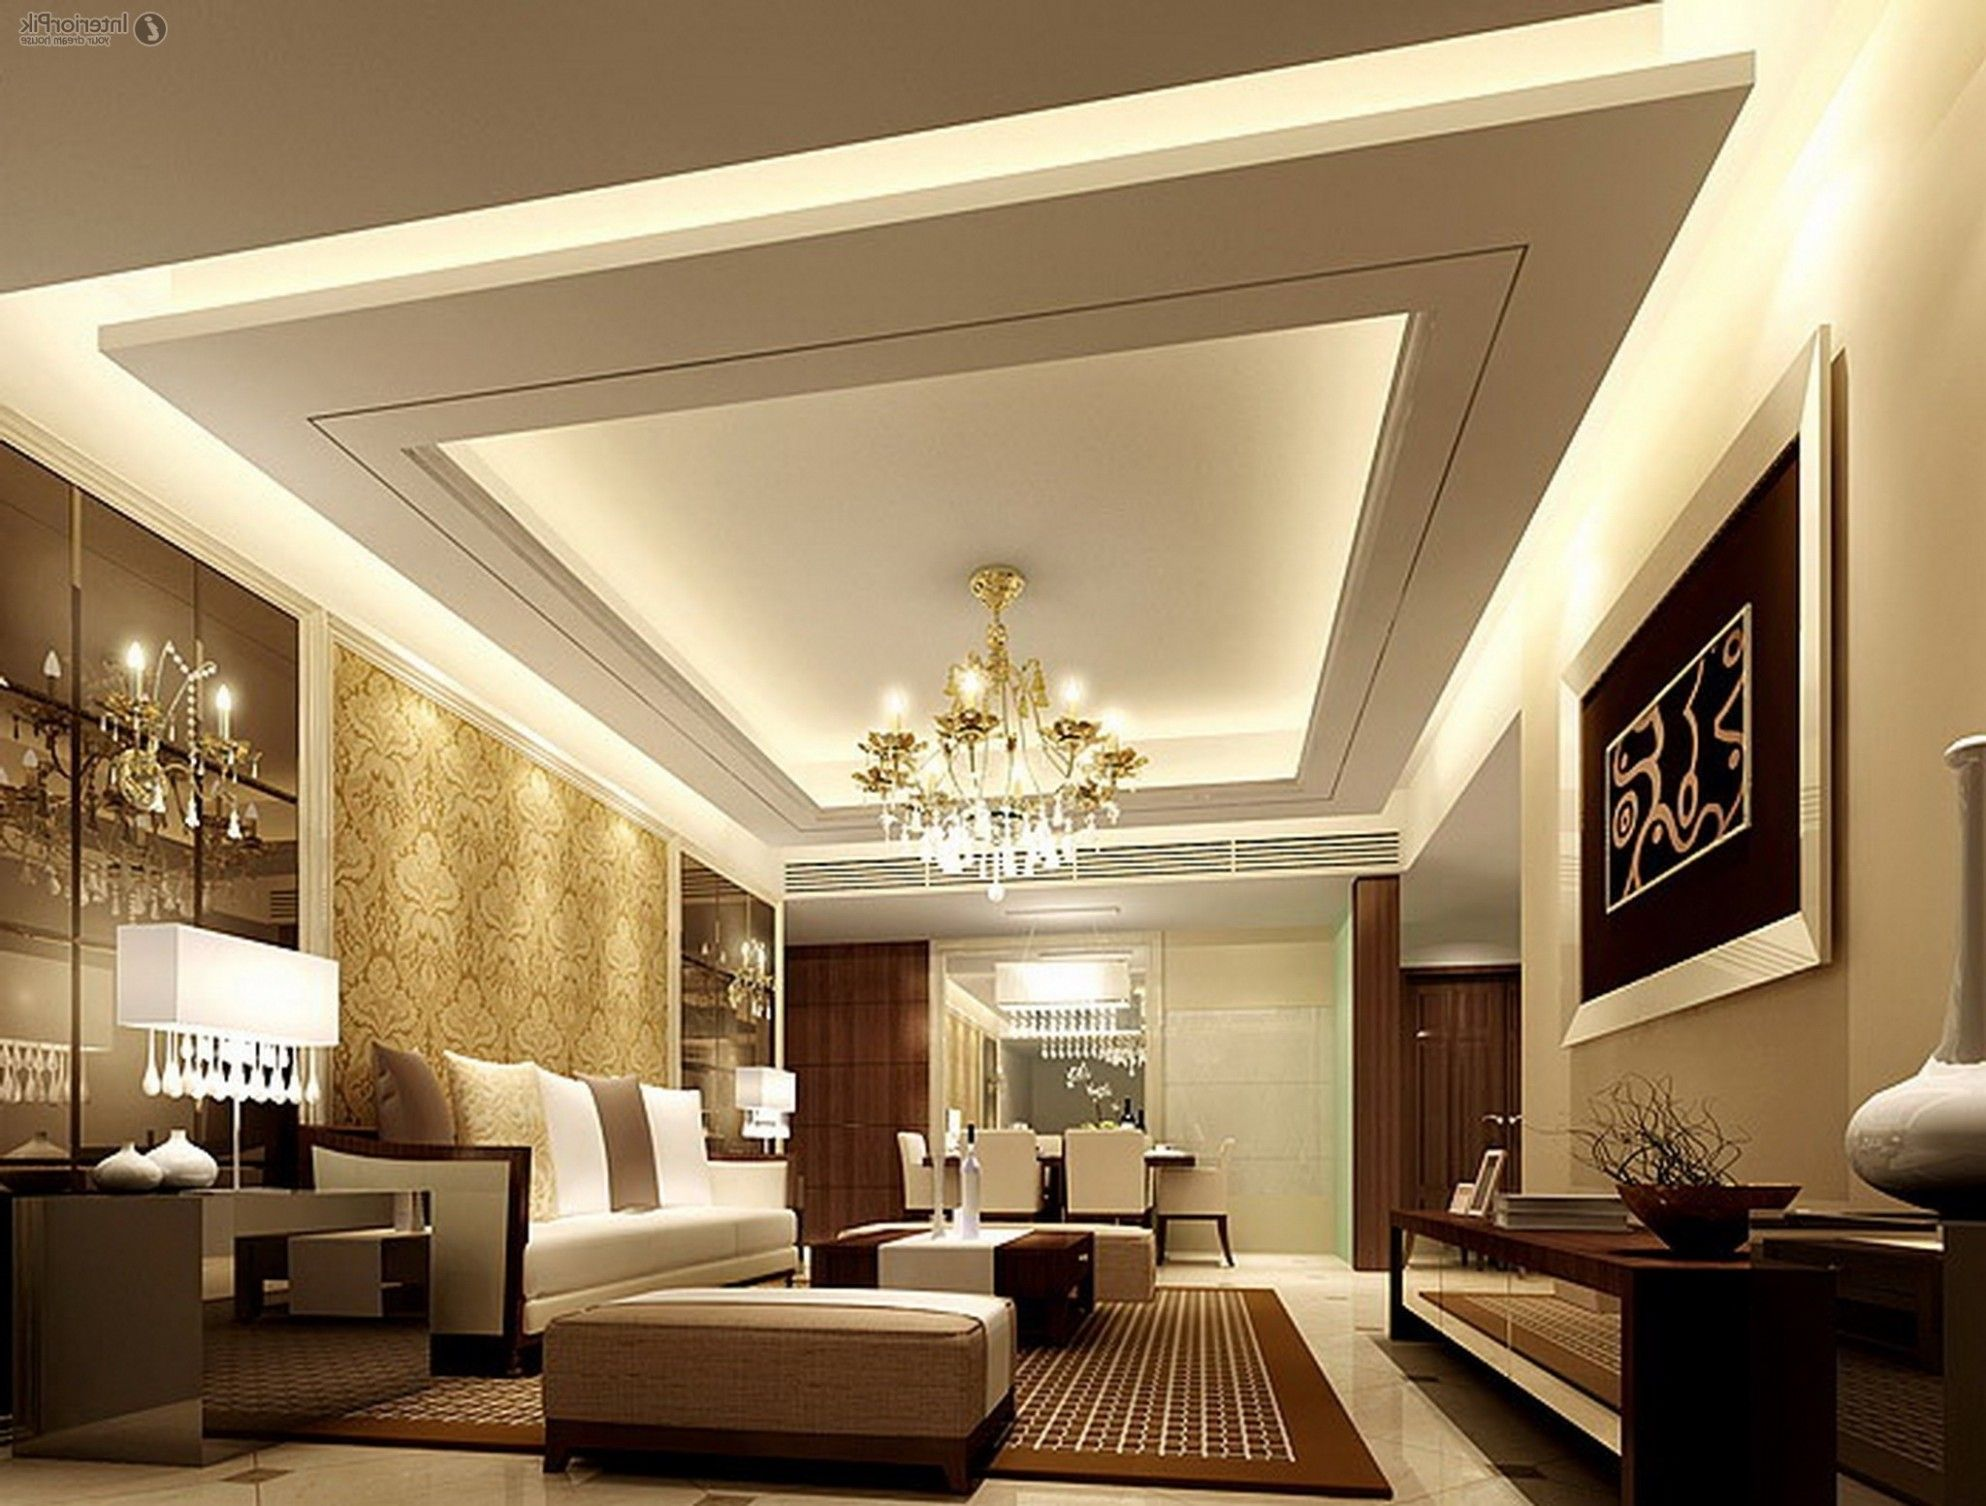 Bedroom False Ceiling Design 5 in 5  Ceiling design living